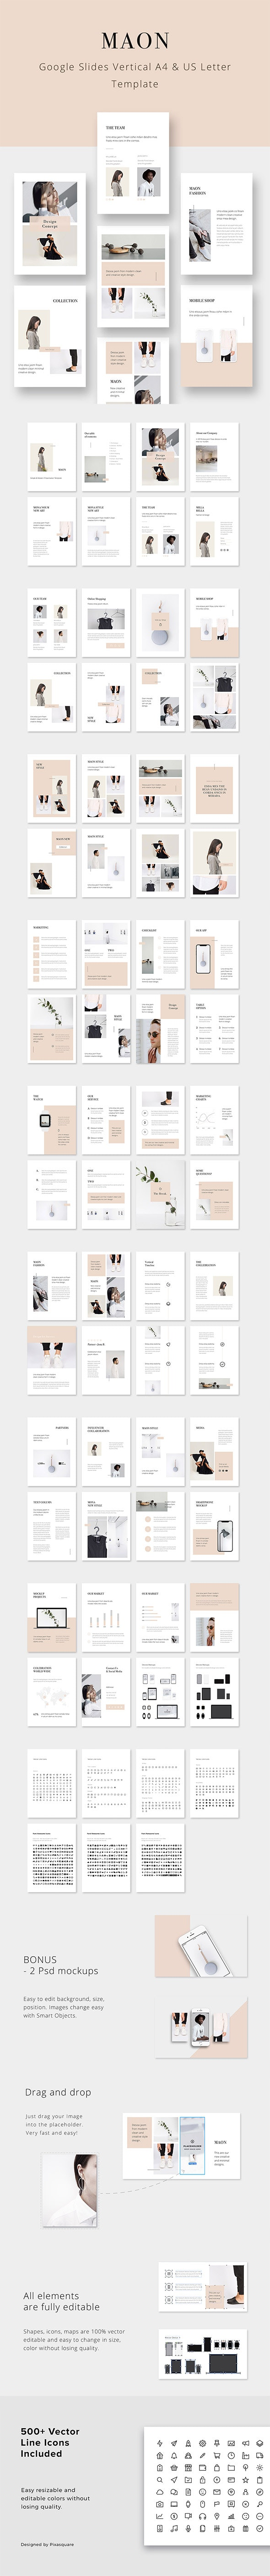 MAON - Vertical Google Slides Presentation Template - Google Slides Presentation Templates